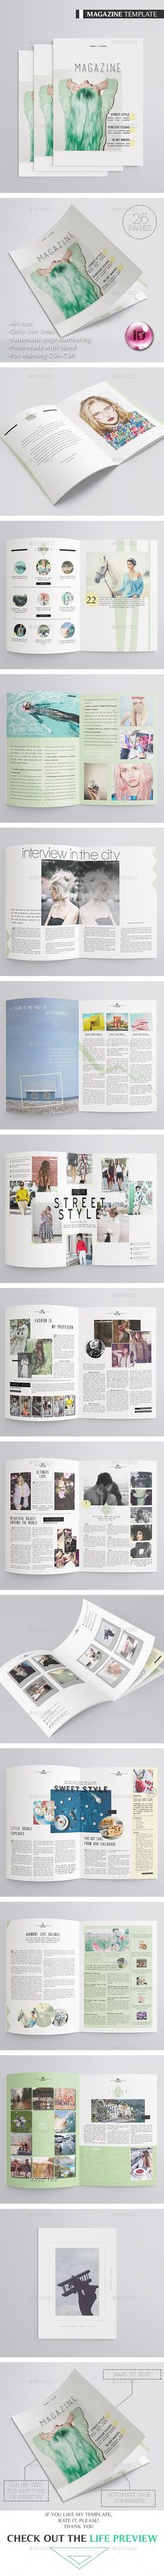 Multipurpose Magazine 26 Pages Template InDesign INDD #design Download: http://graphicriver.net/item/multipurpose-magazine-26-pages/13240907?ref=ksioks